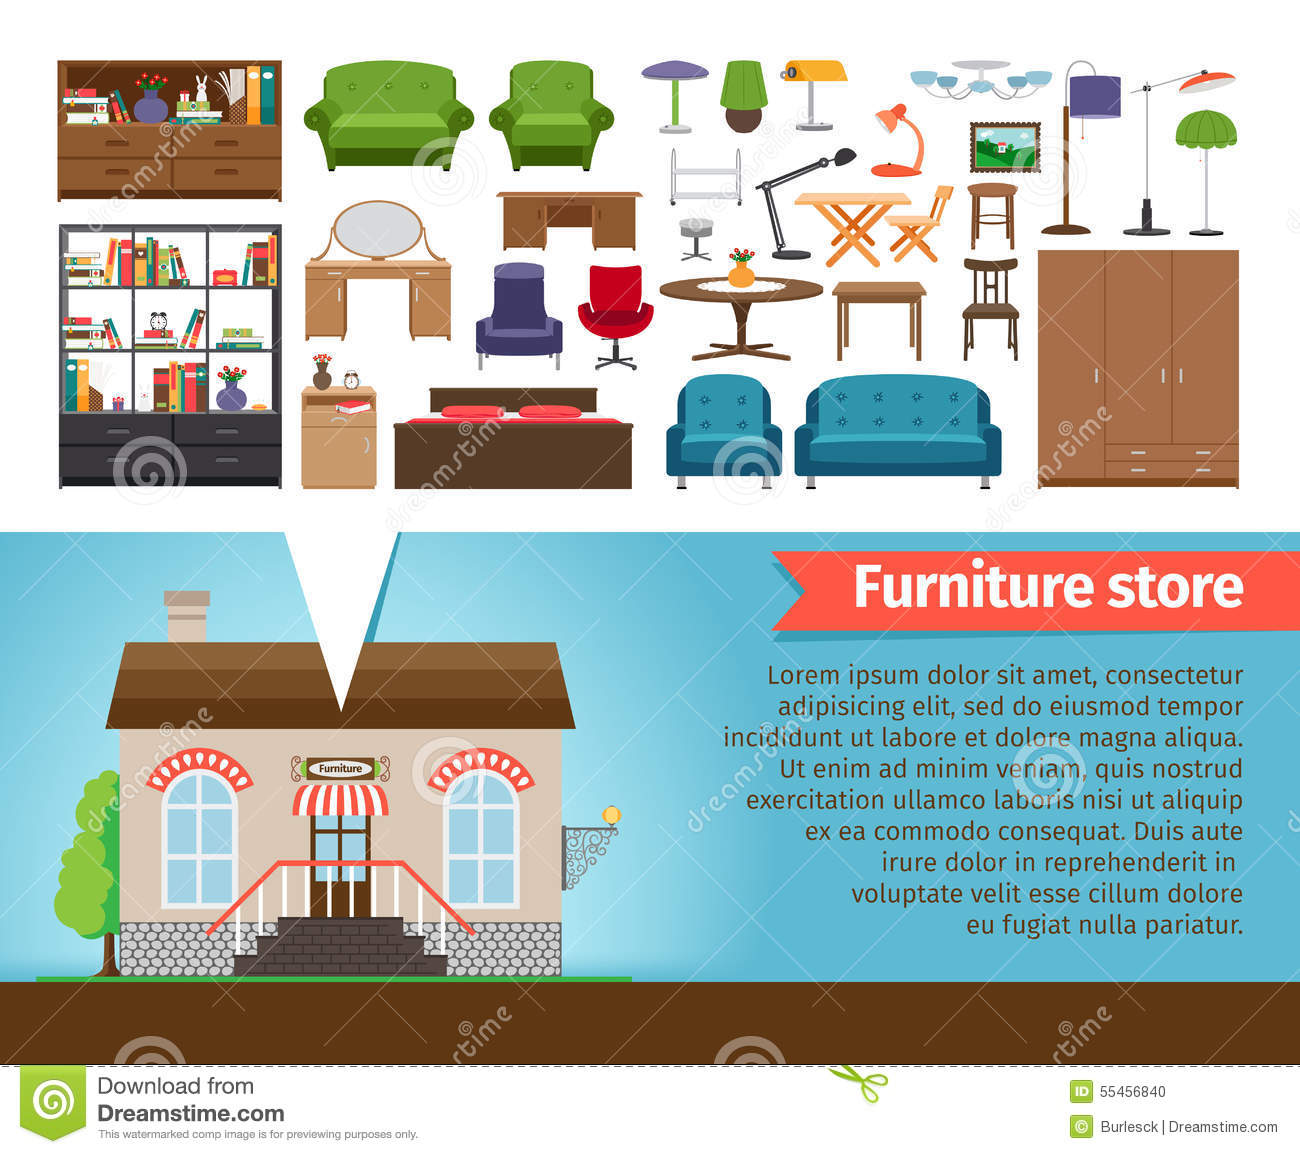 Furniture Store Stock Vector Image 55456840